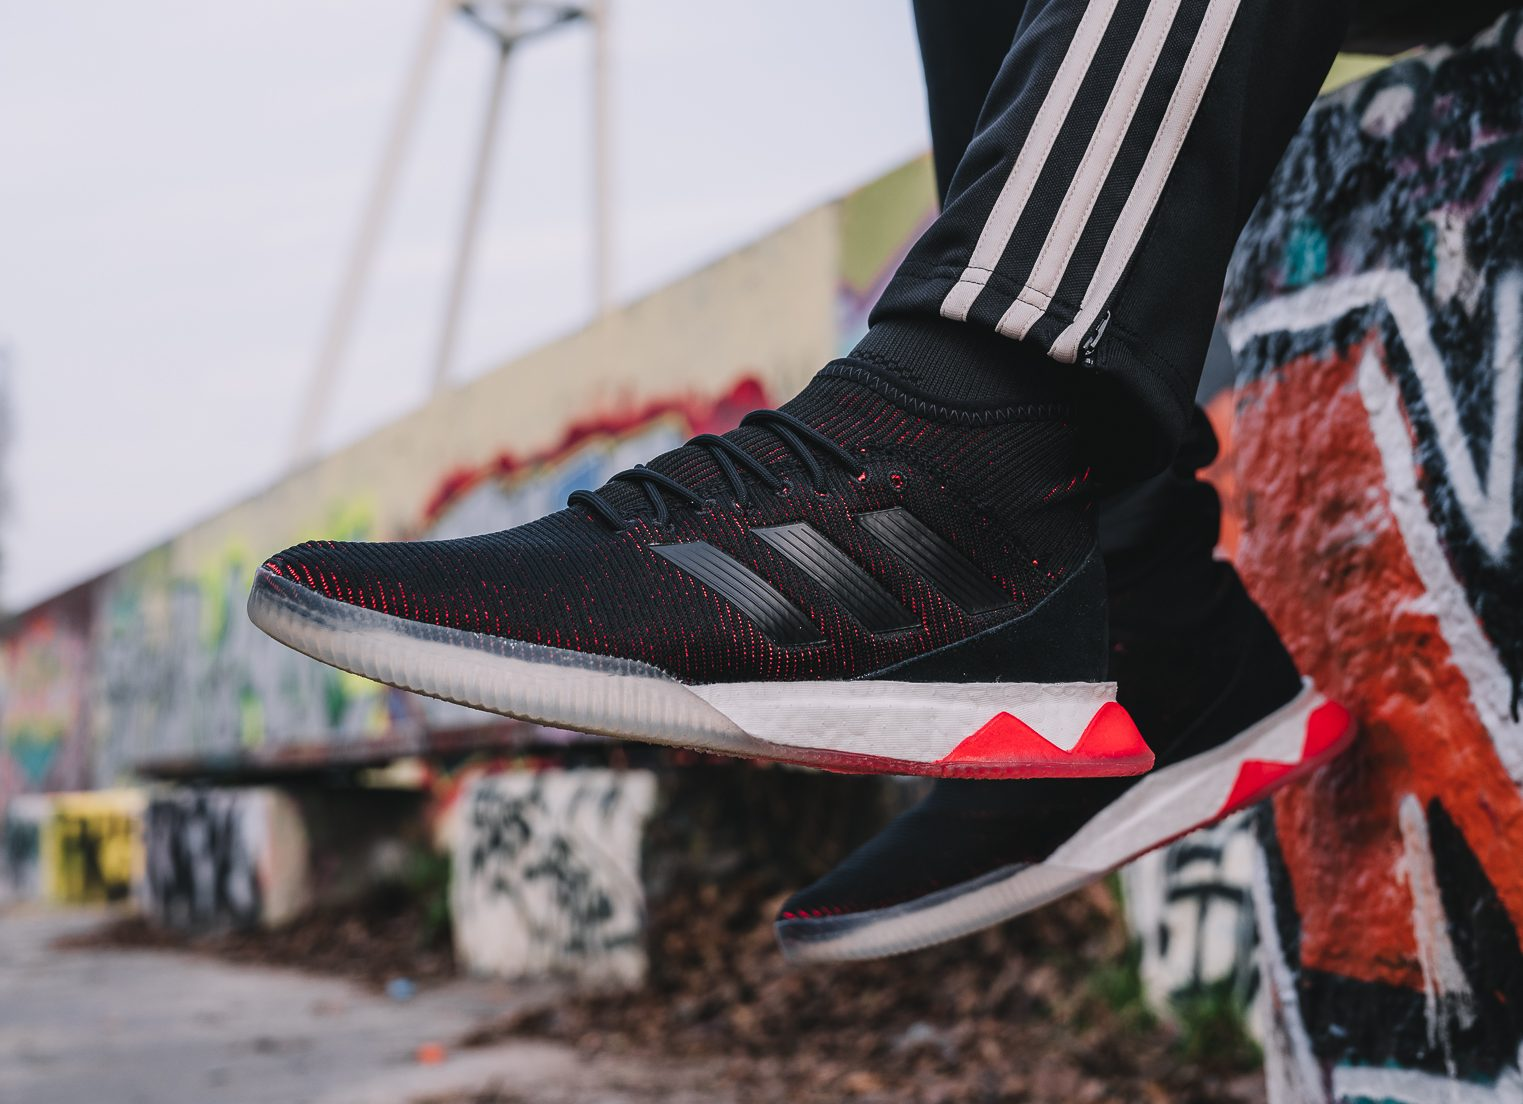 585d1c057f4c adidas Football Take It to the Streets with the Predator Tango